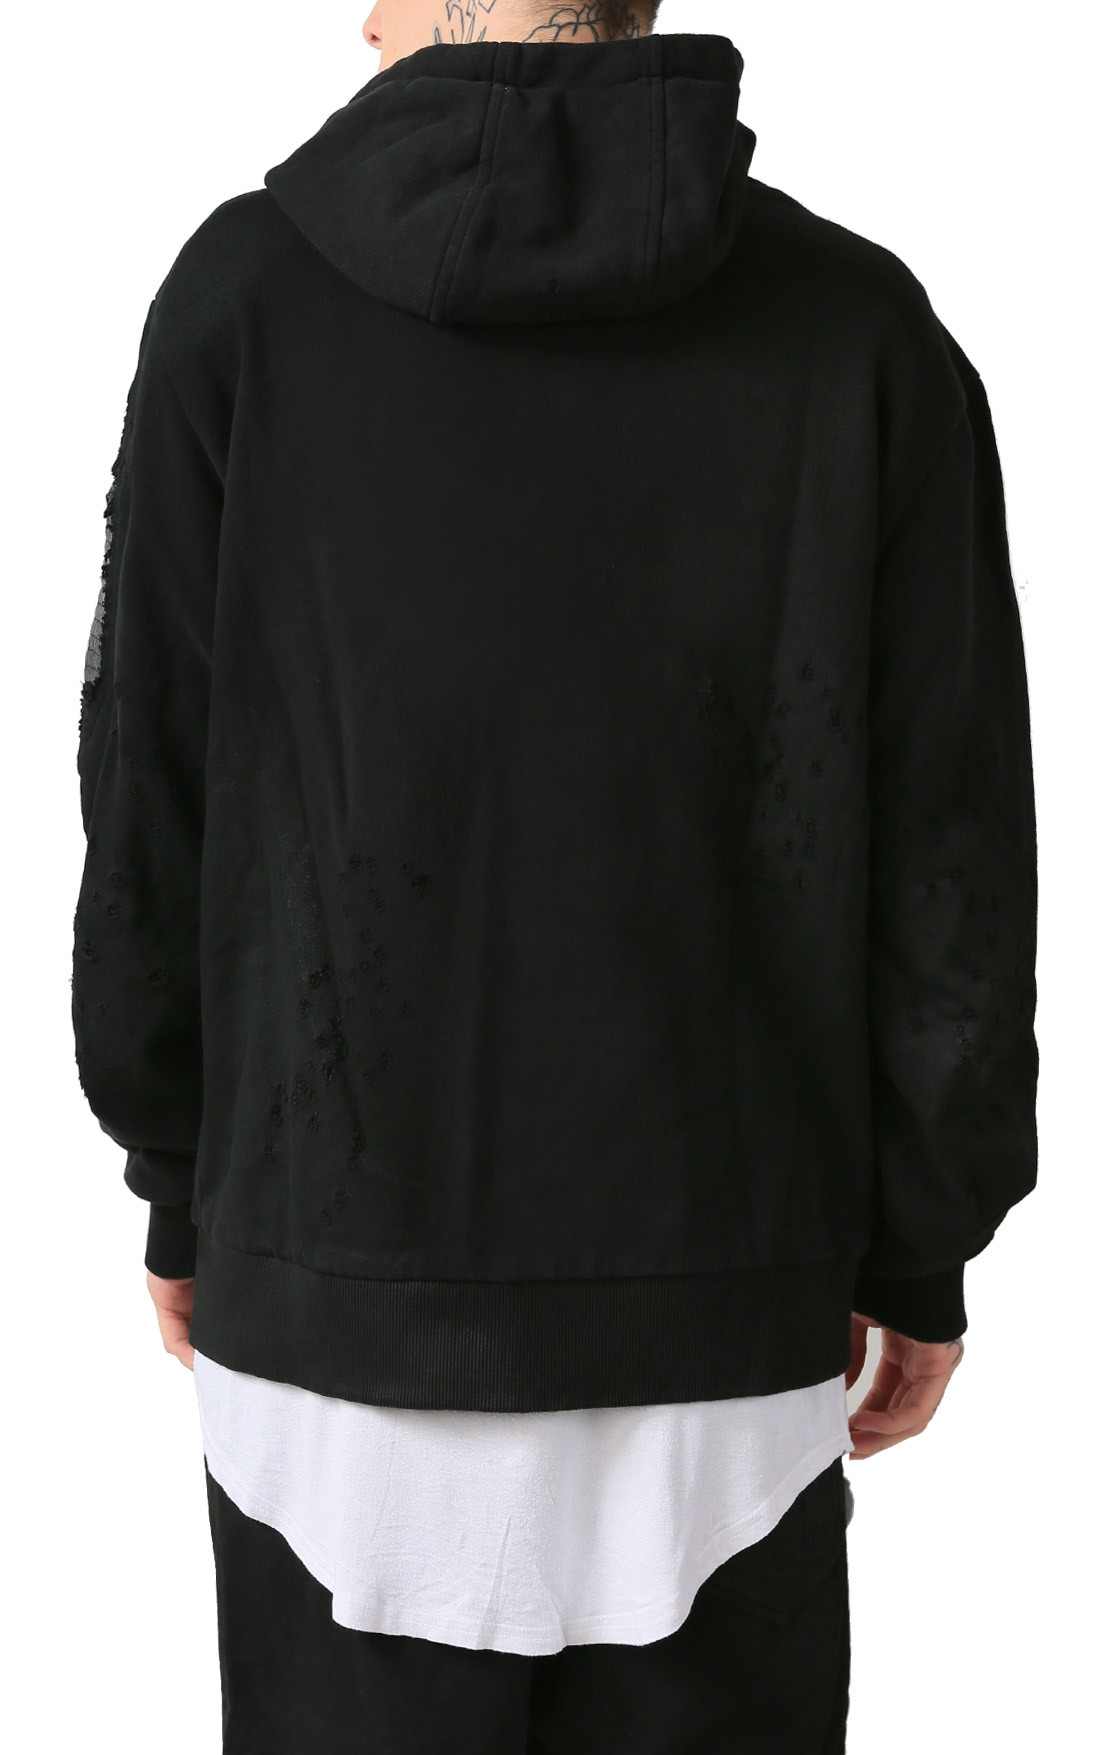 RH45 - Black Hoodie with Print and Leather Detail (H200)